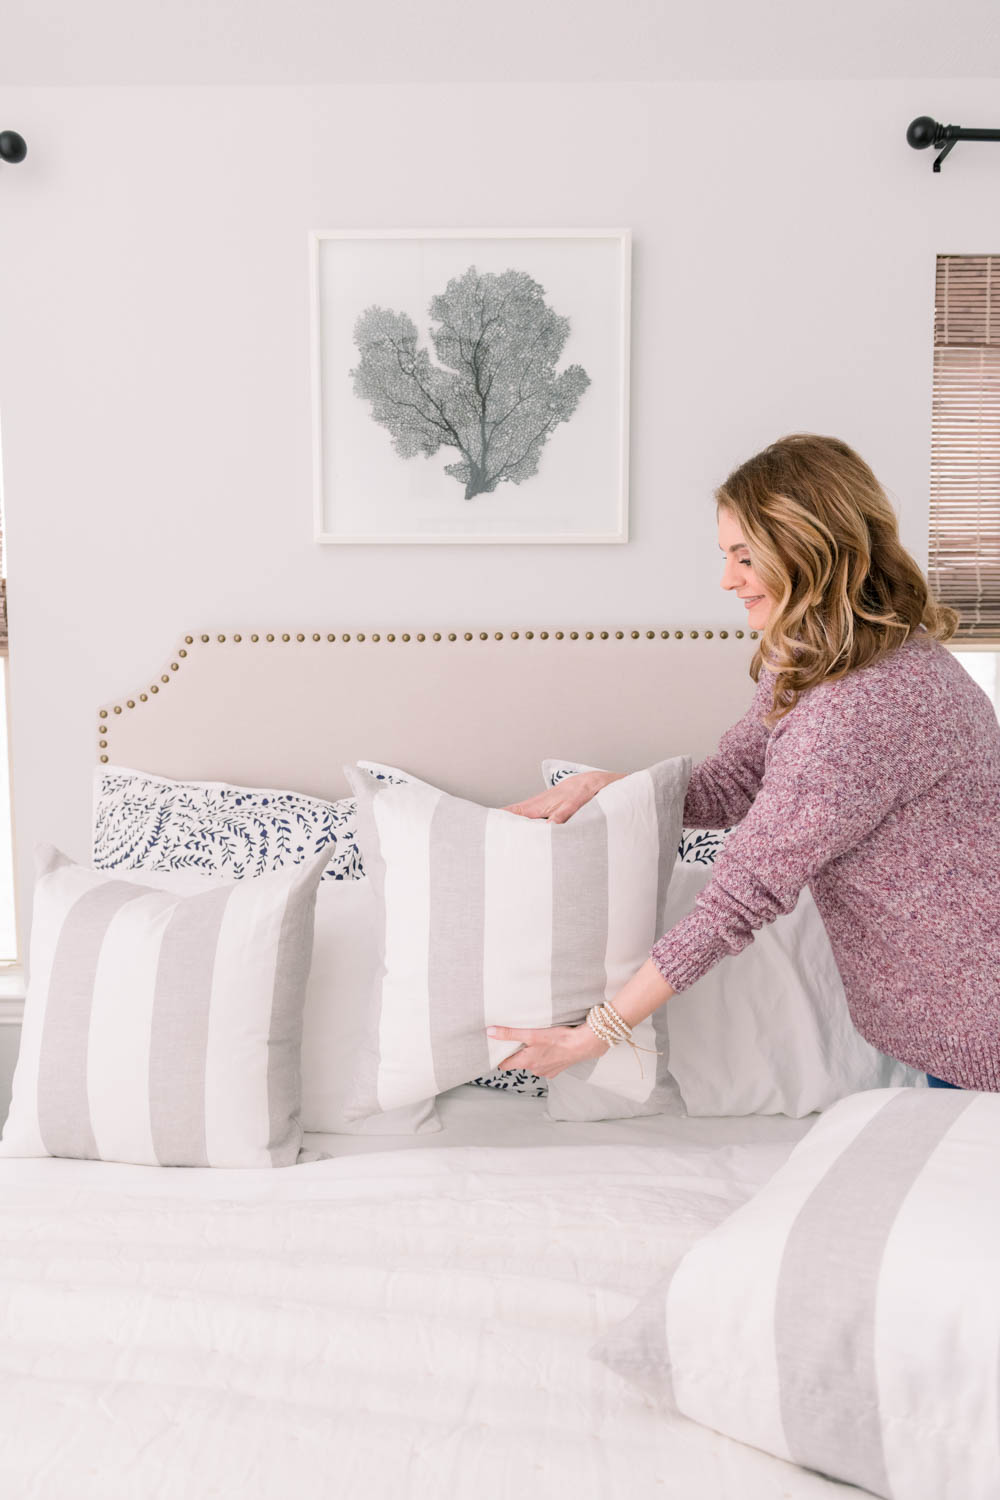 Use throw pillows to add color and pattern to your bed. #ABlissfulNest #bedding #beddingideas